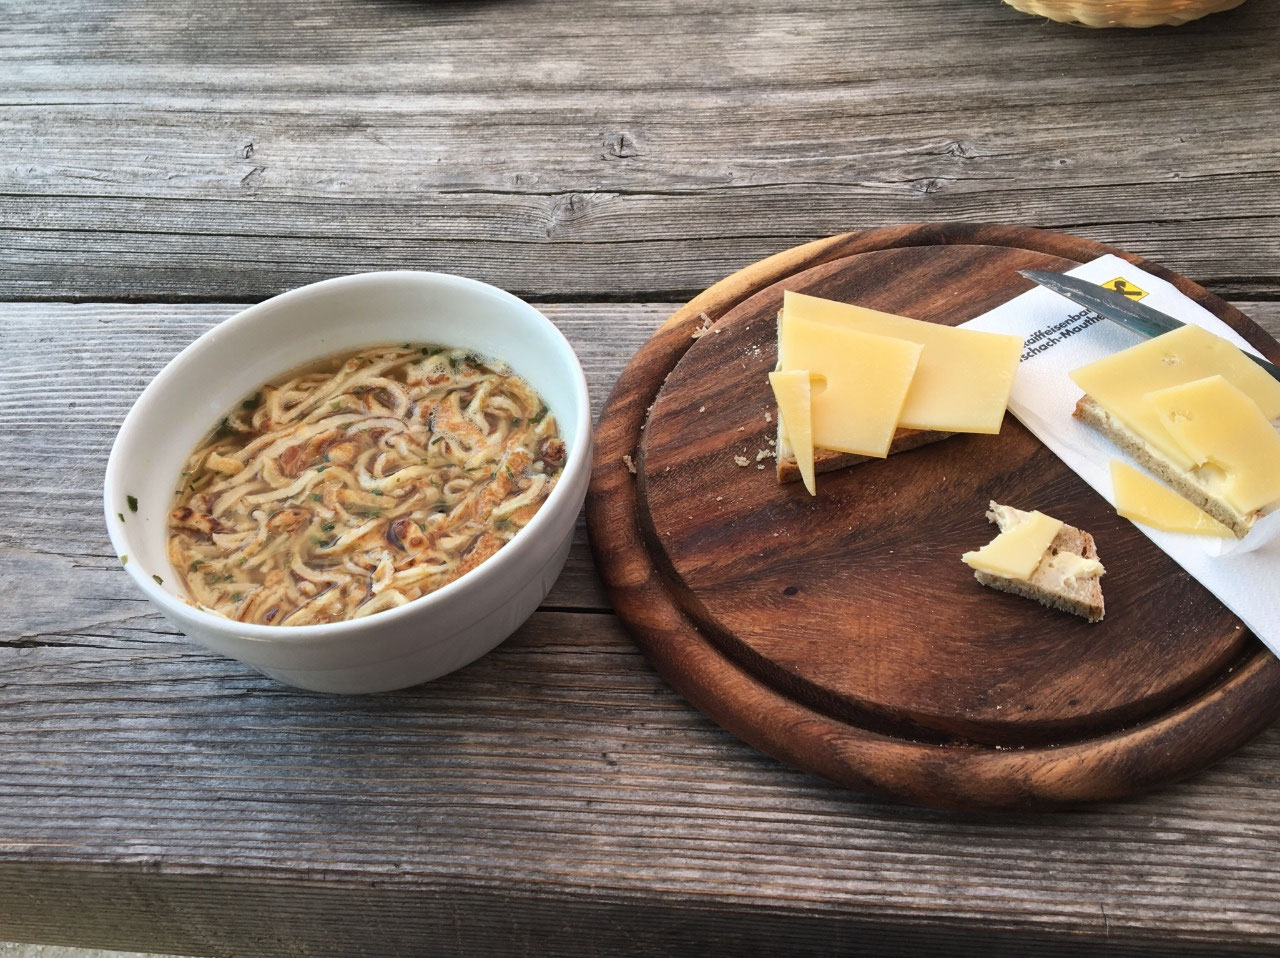 Soup and cheese